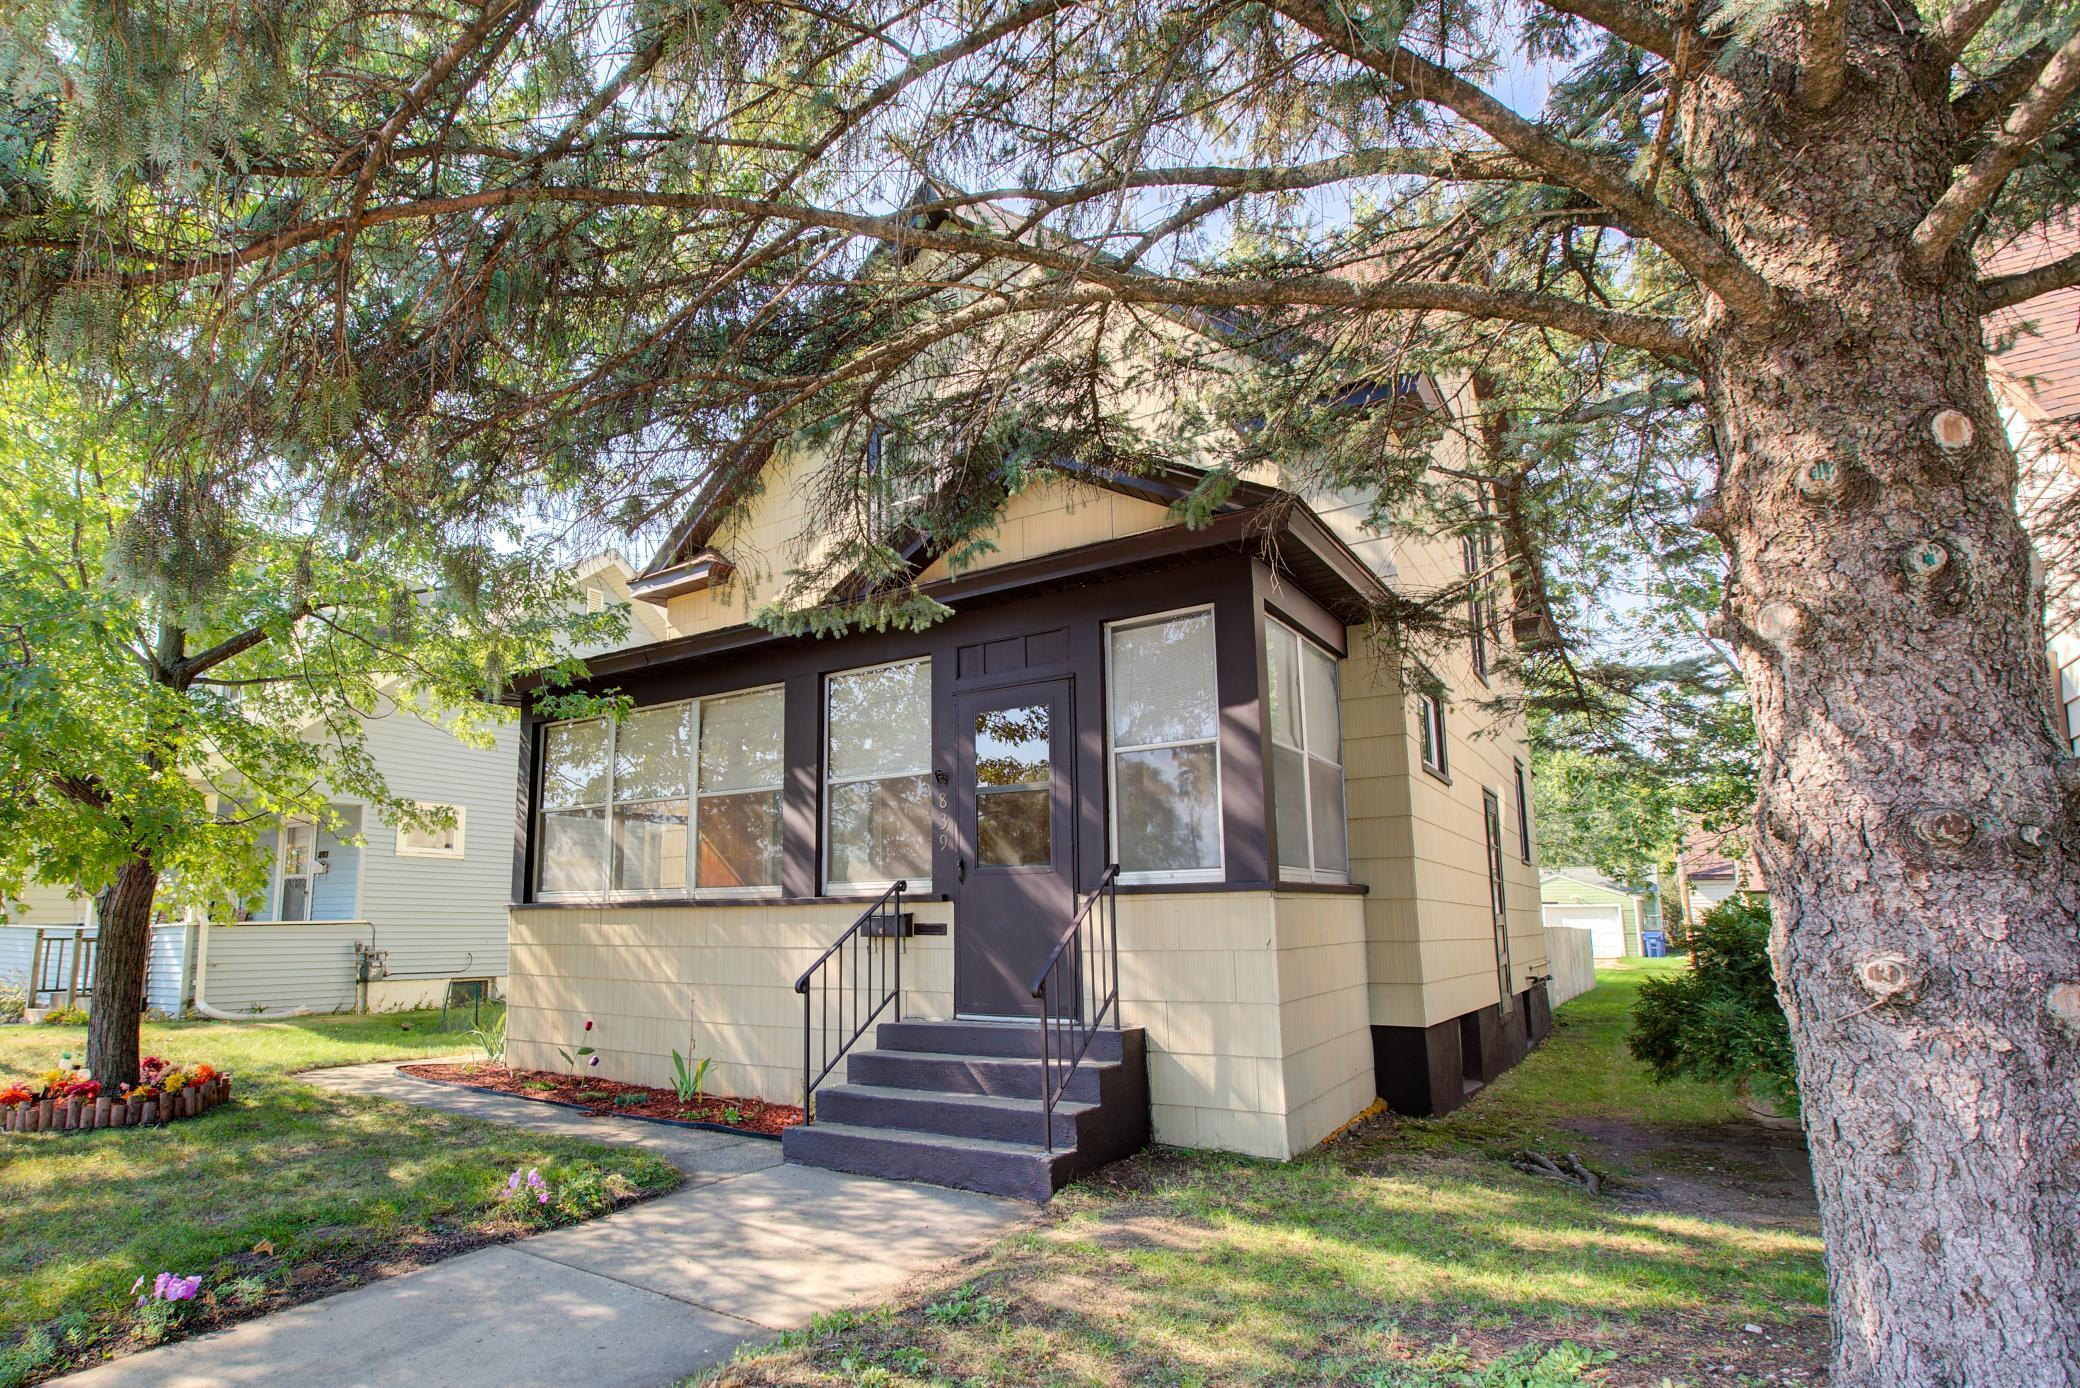 Fabulous starter home in the heart of downtown. Newly refinished maple floors. 3 bedrooms on one level fresh paint. Double master bedroom closets. Close to Lake George, St Cloud State, & Downtown. You will like the cedar fenced in backyard.